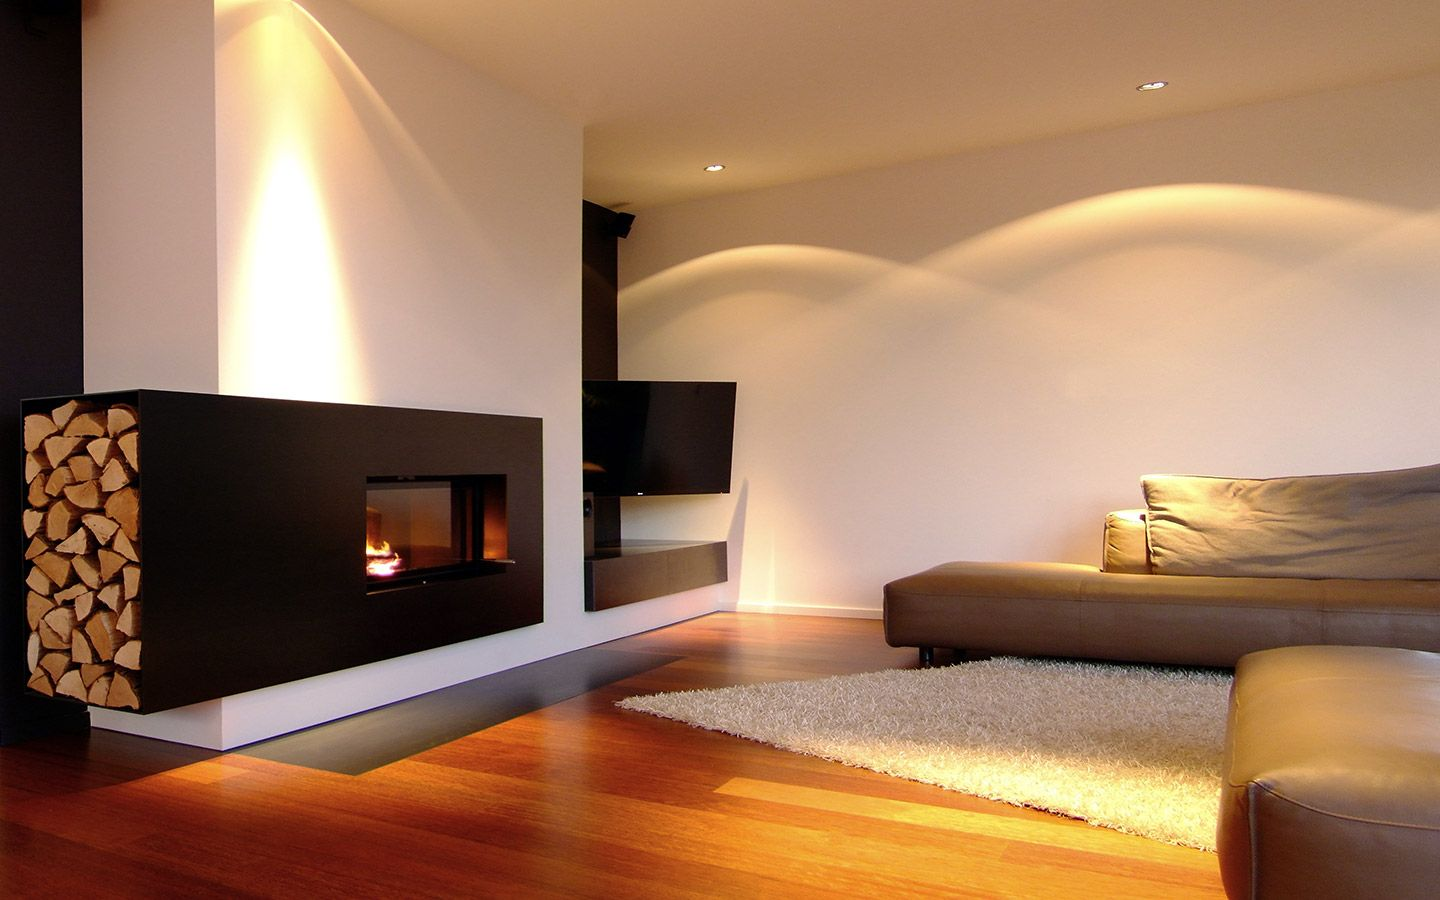 Moderner kamin aus rohstahl und putz modern fireplace made of steel and plaster